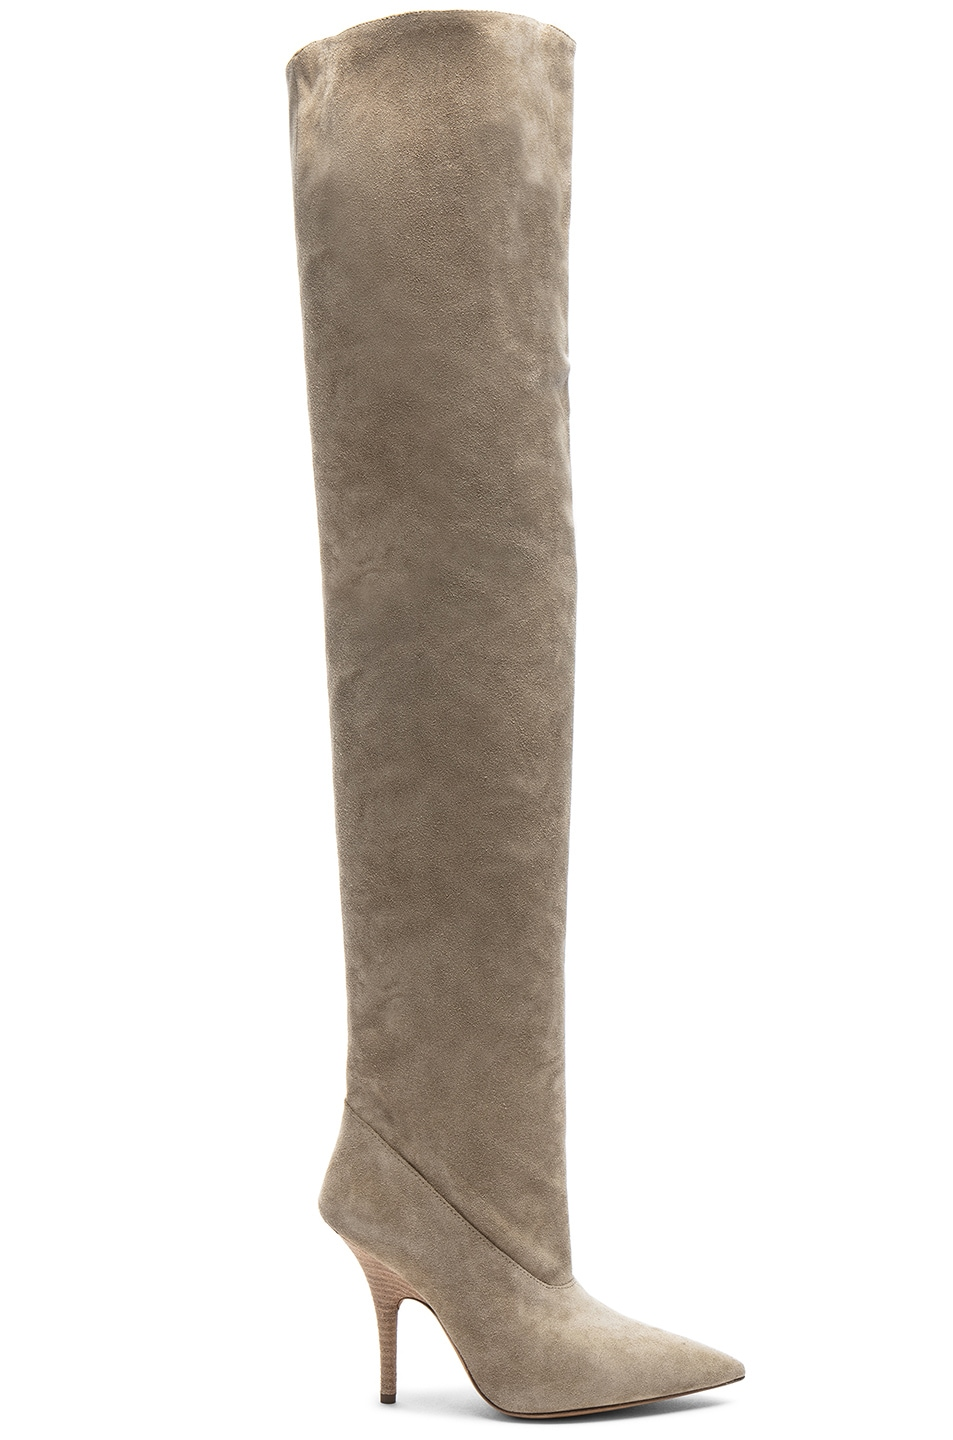 Image 1 of YEEZY Season 5 Suede Tubular Thigh High Boots in Taupe